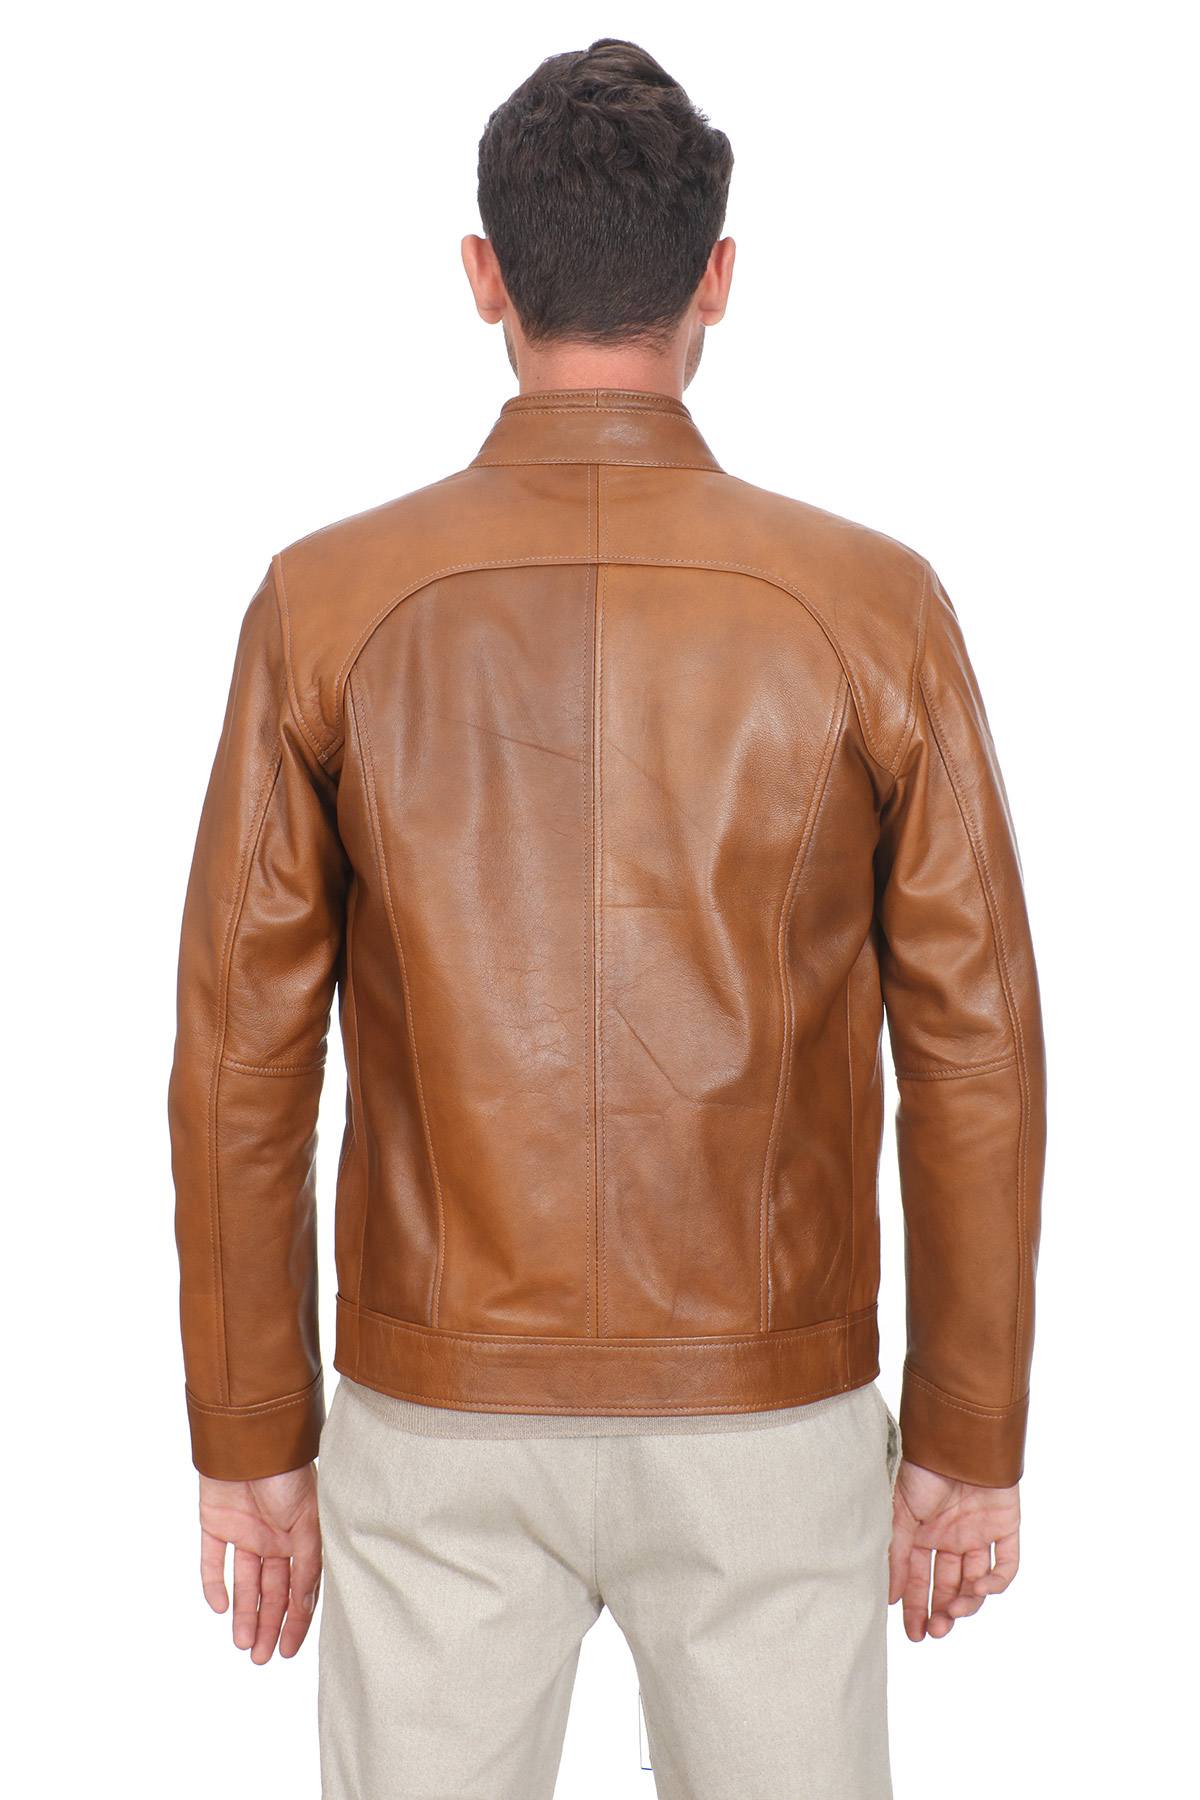 Gap Mens Leather Jackets